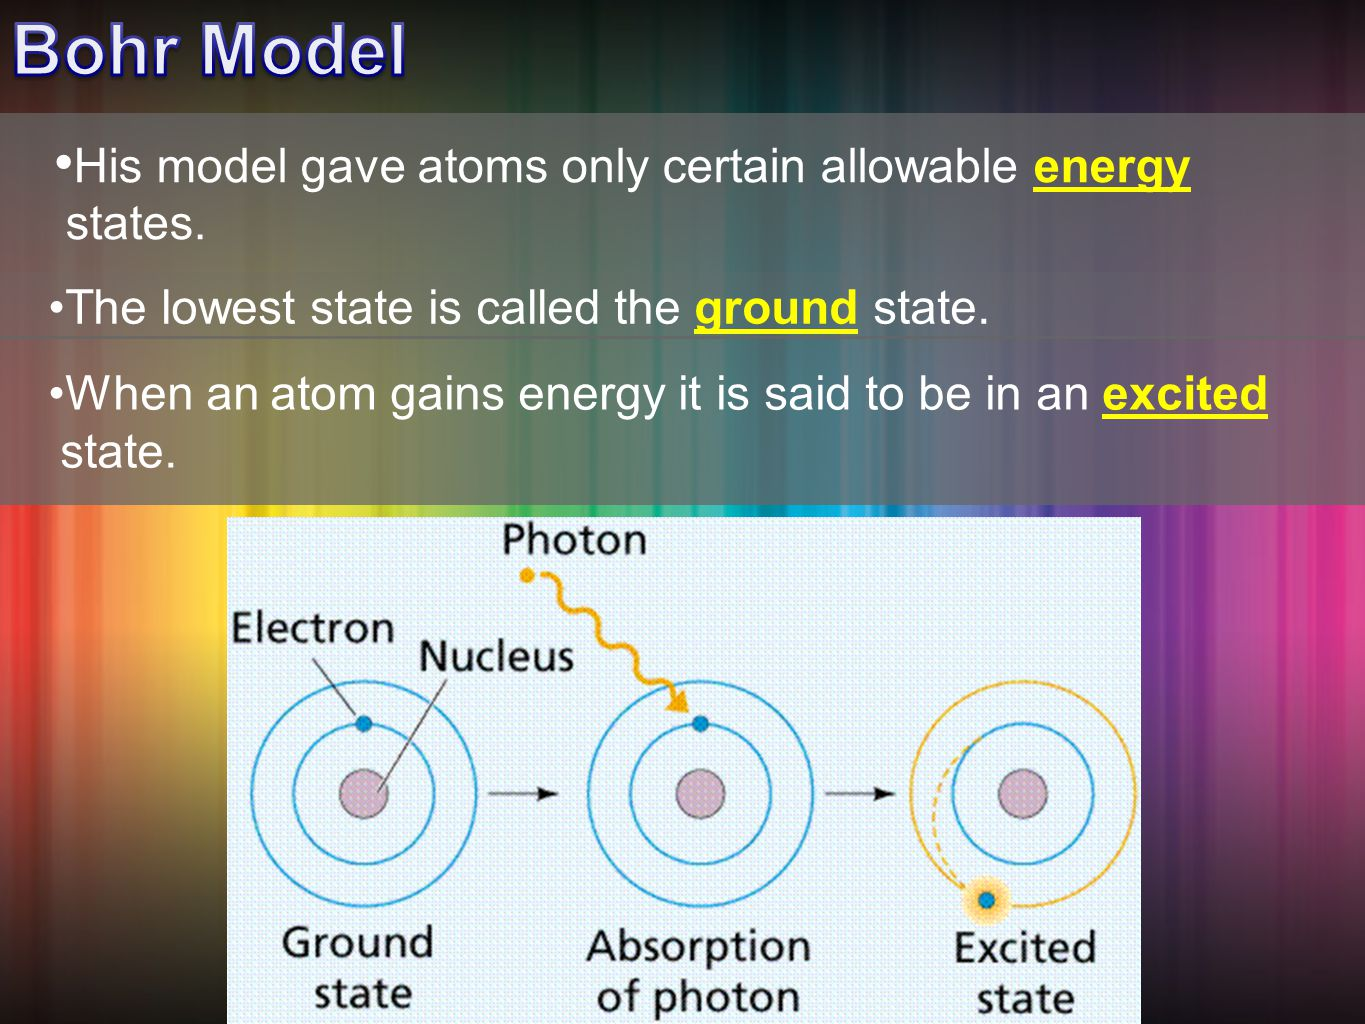 His model gave atoms only certain allowable energy states.